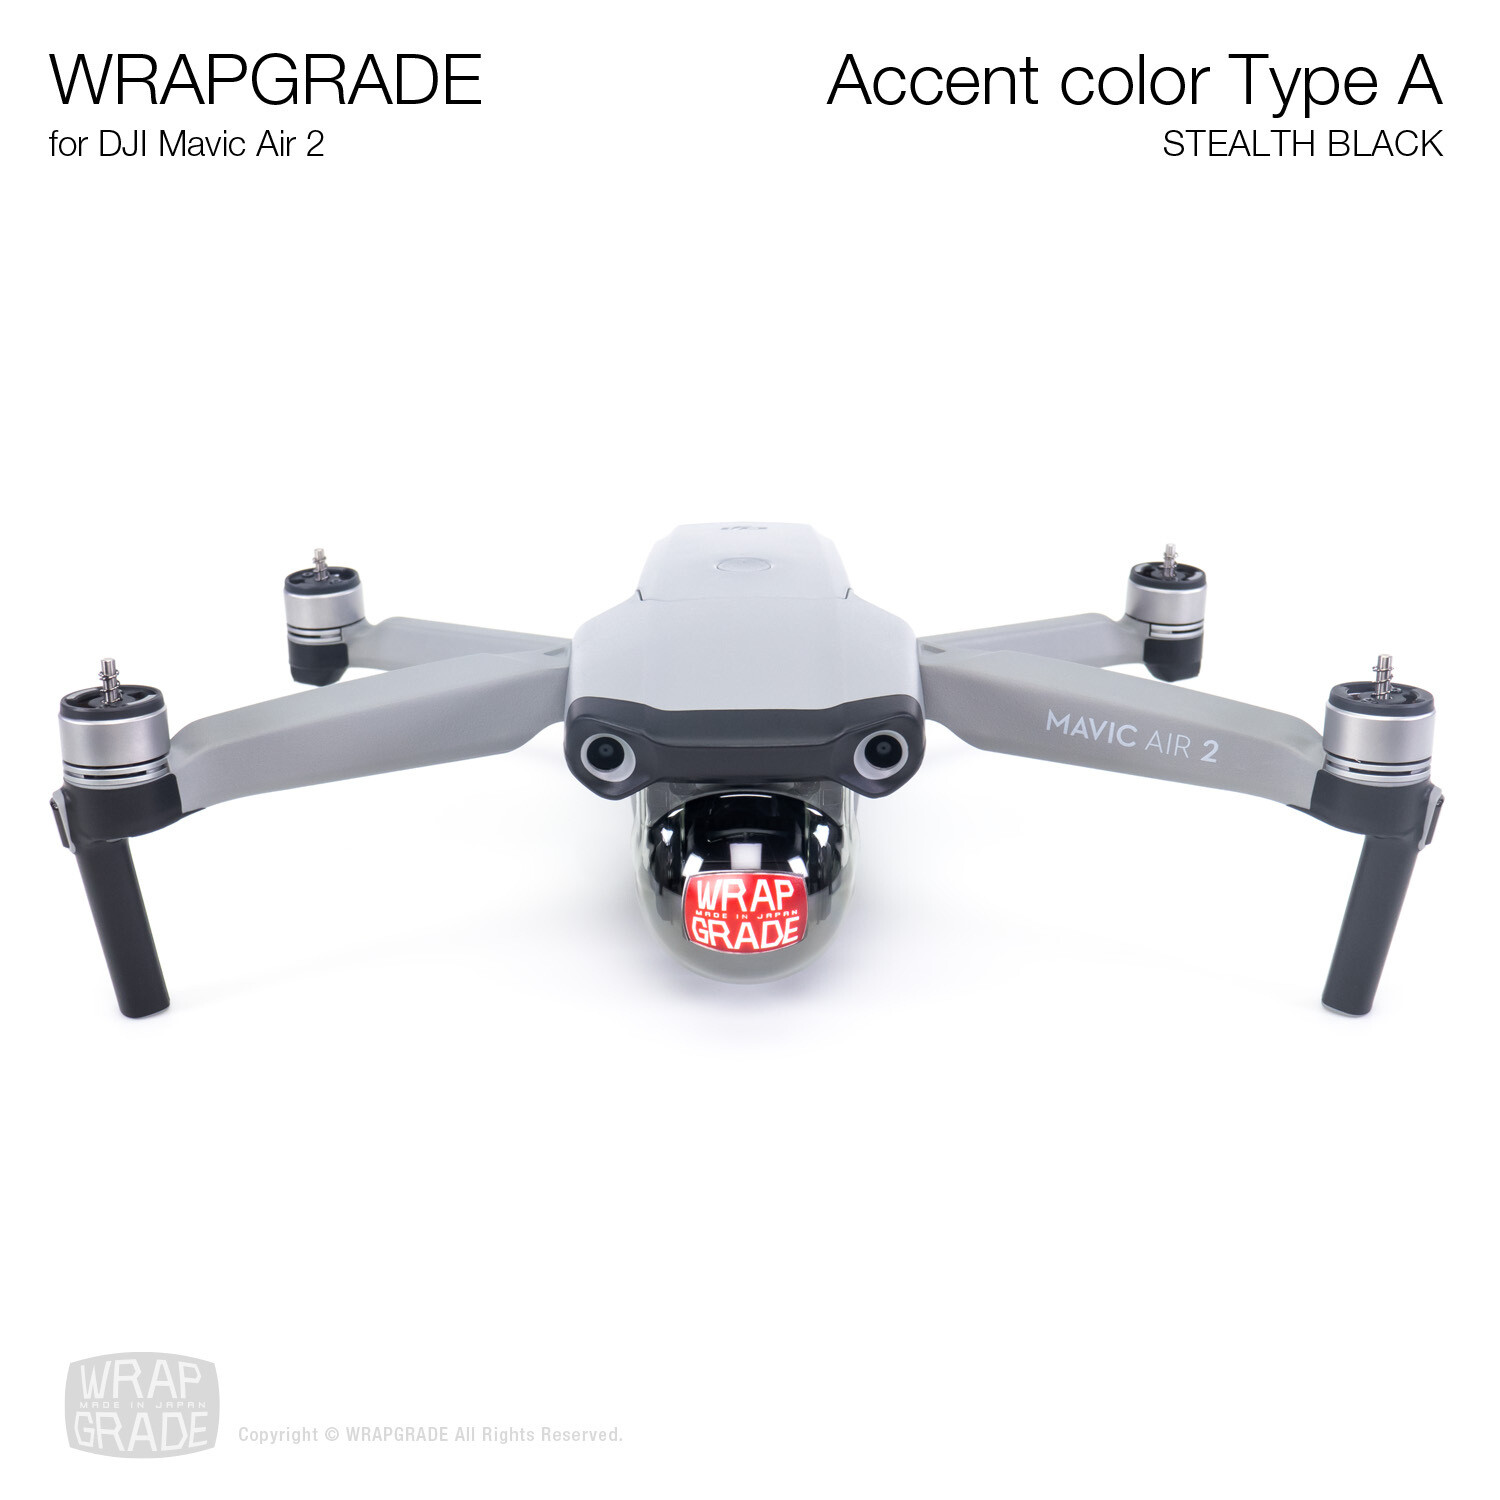 Wrapgrade for DJI Mavic Air 2 | Accent Color A (STEALTH BLACK)